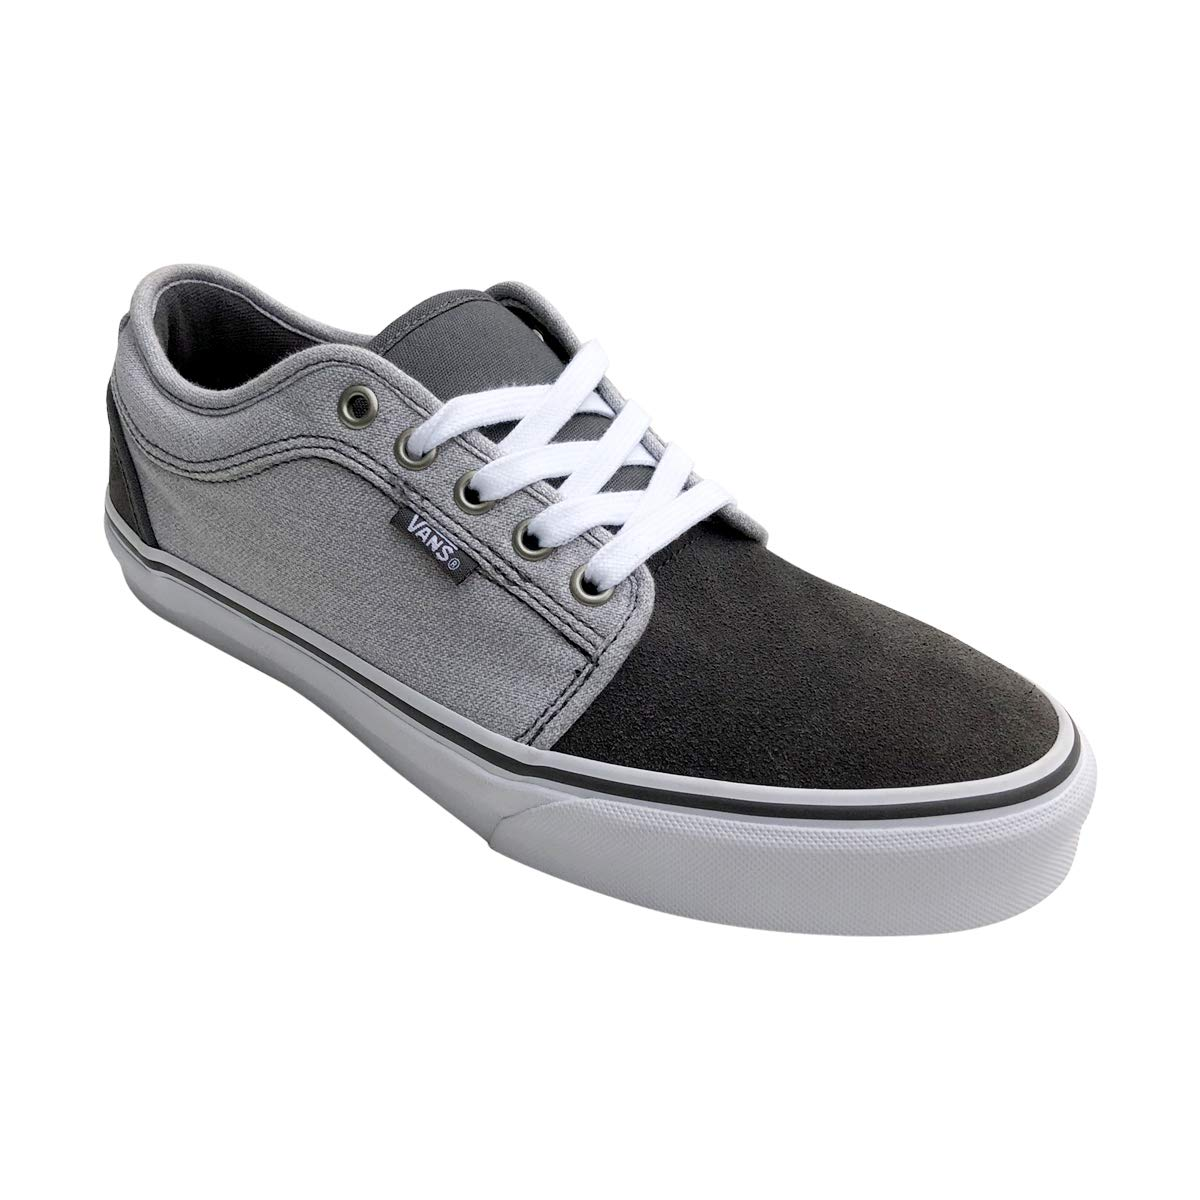 Suiting) Informal Low Chukka Vans Pewter hombre gris Frost